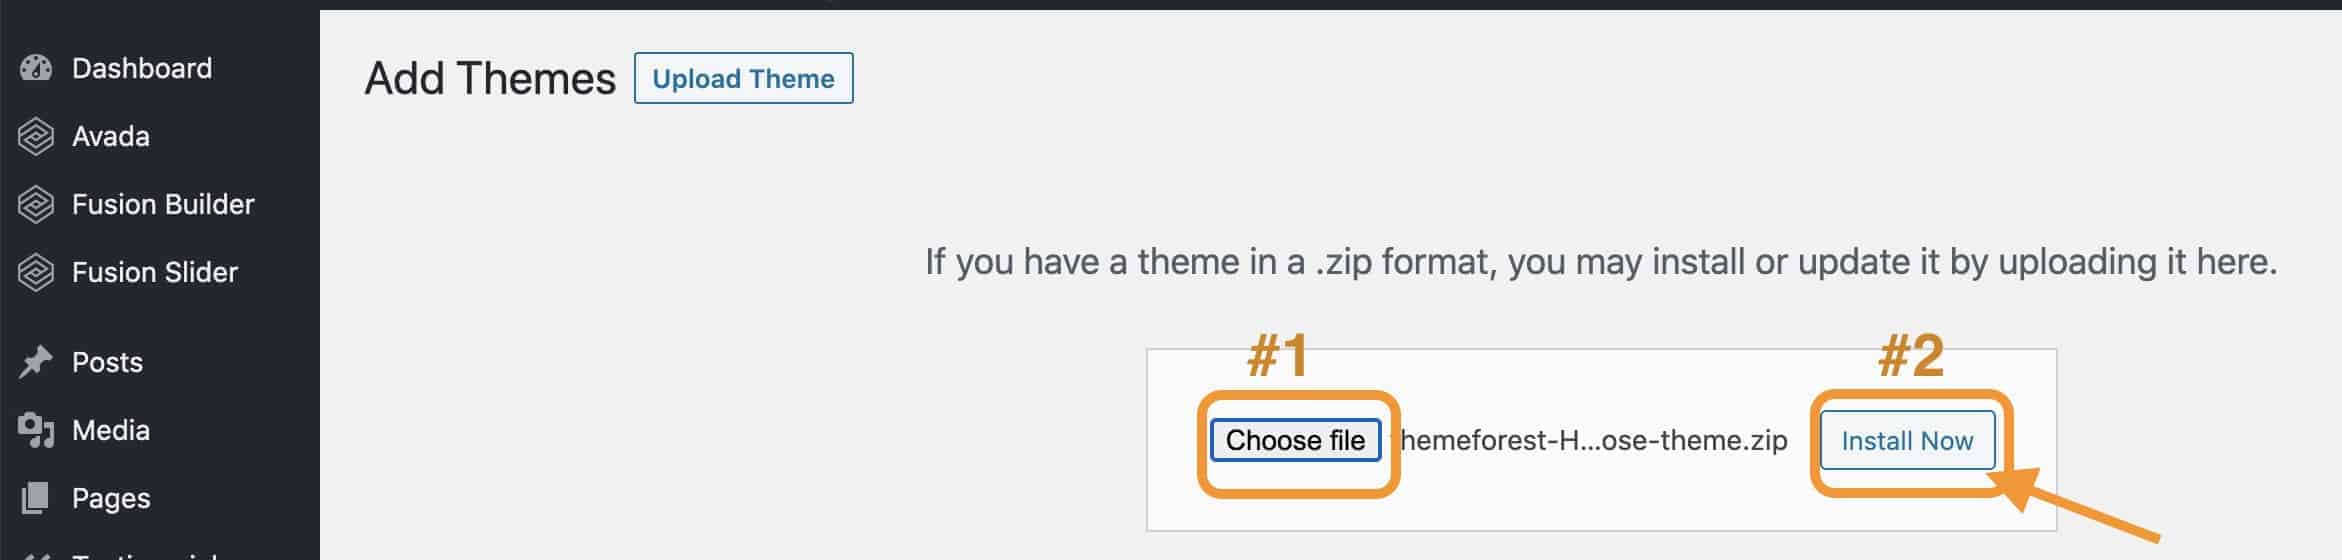 how to upload theme